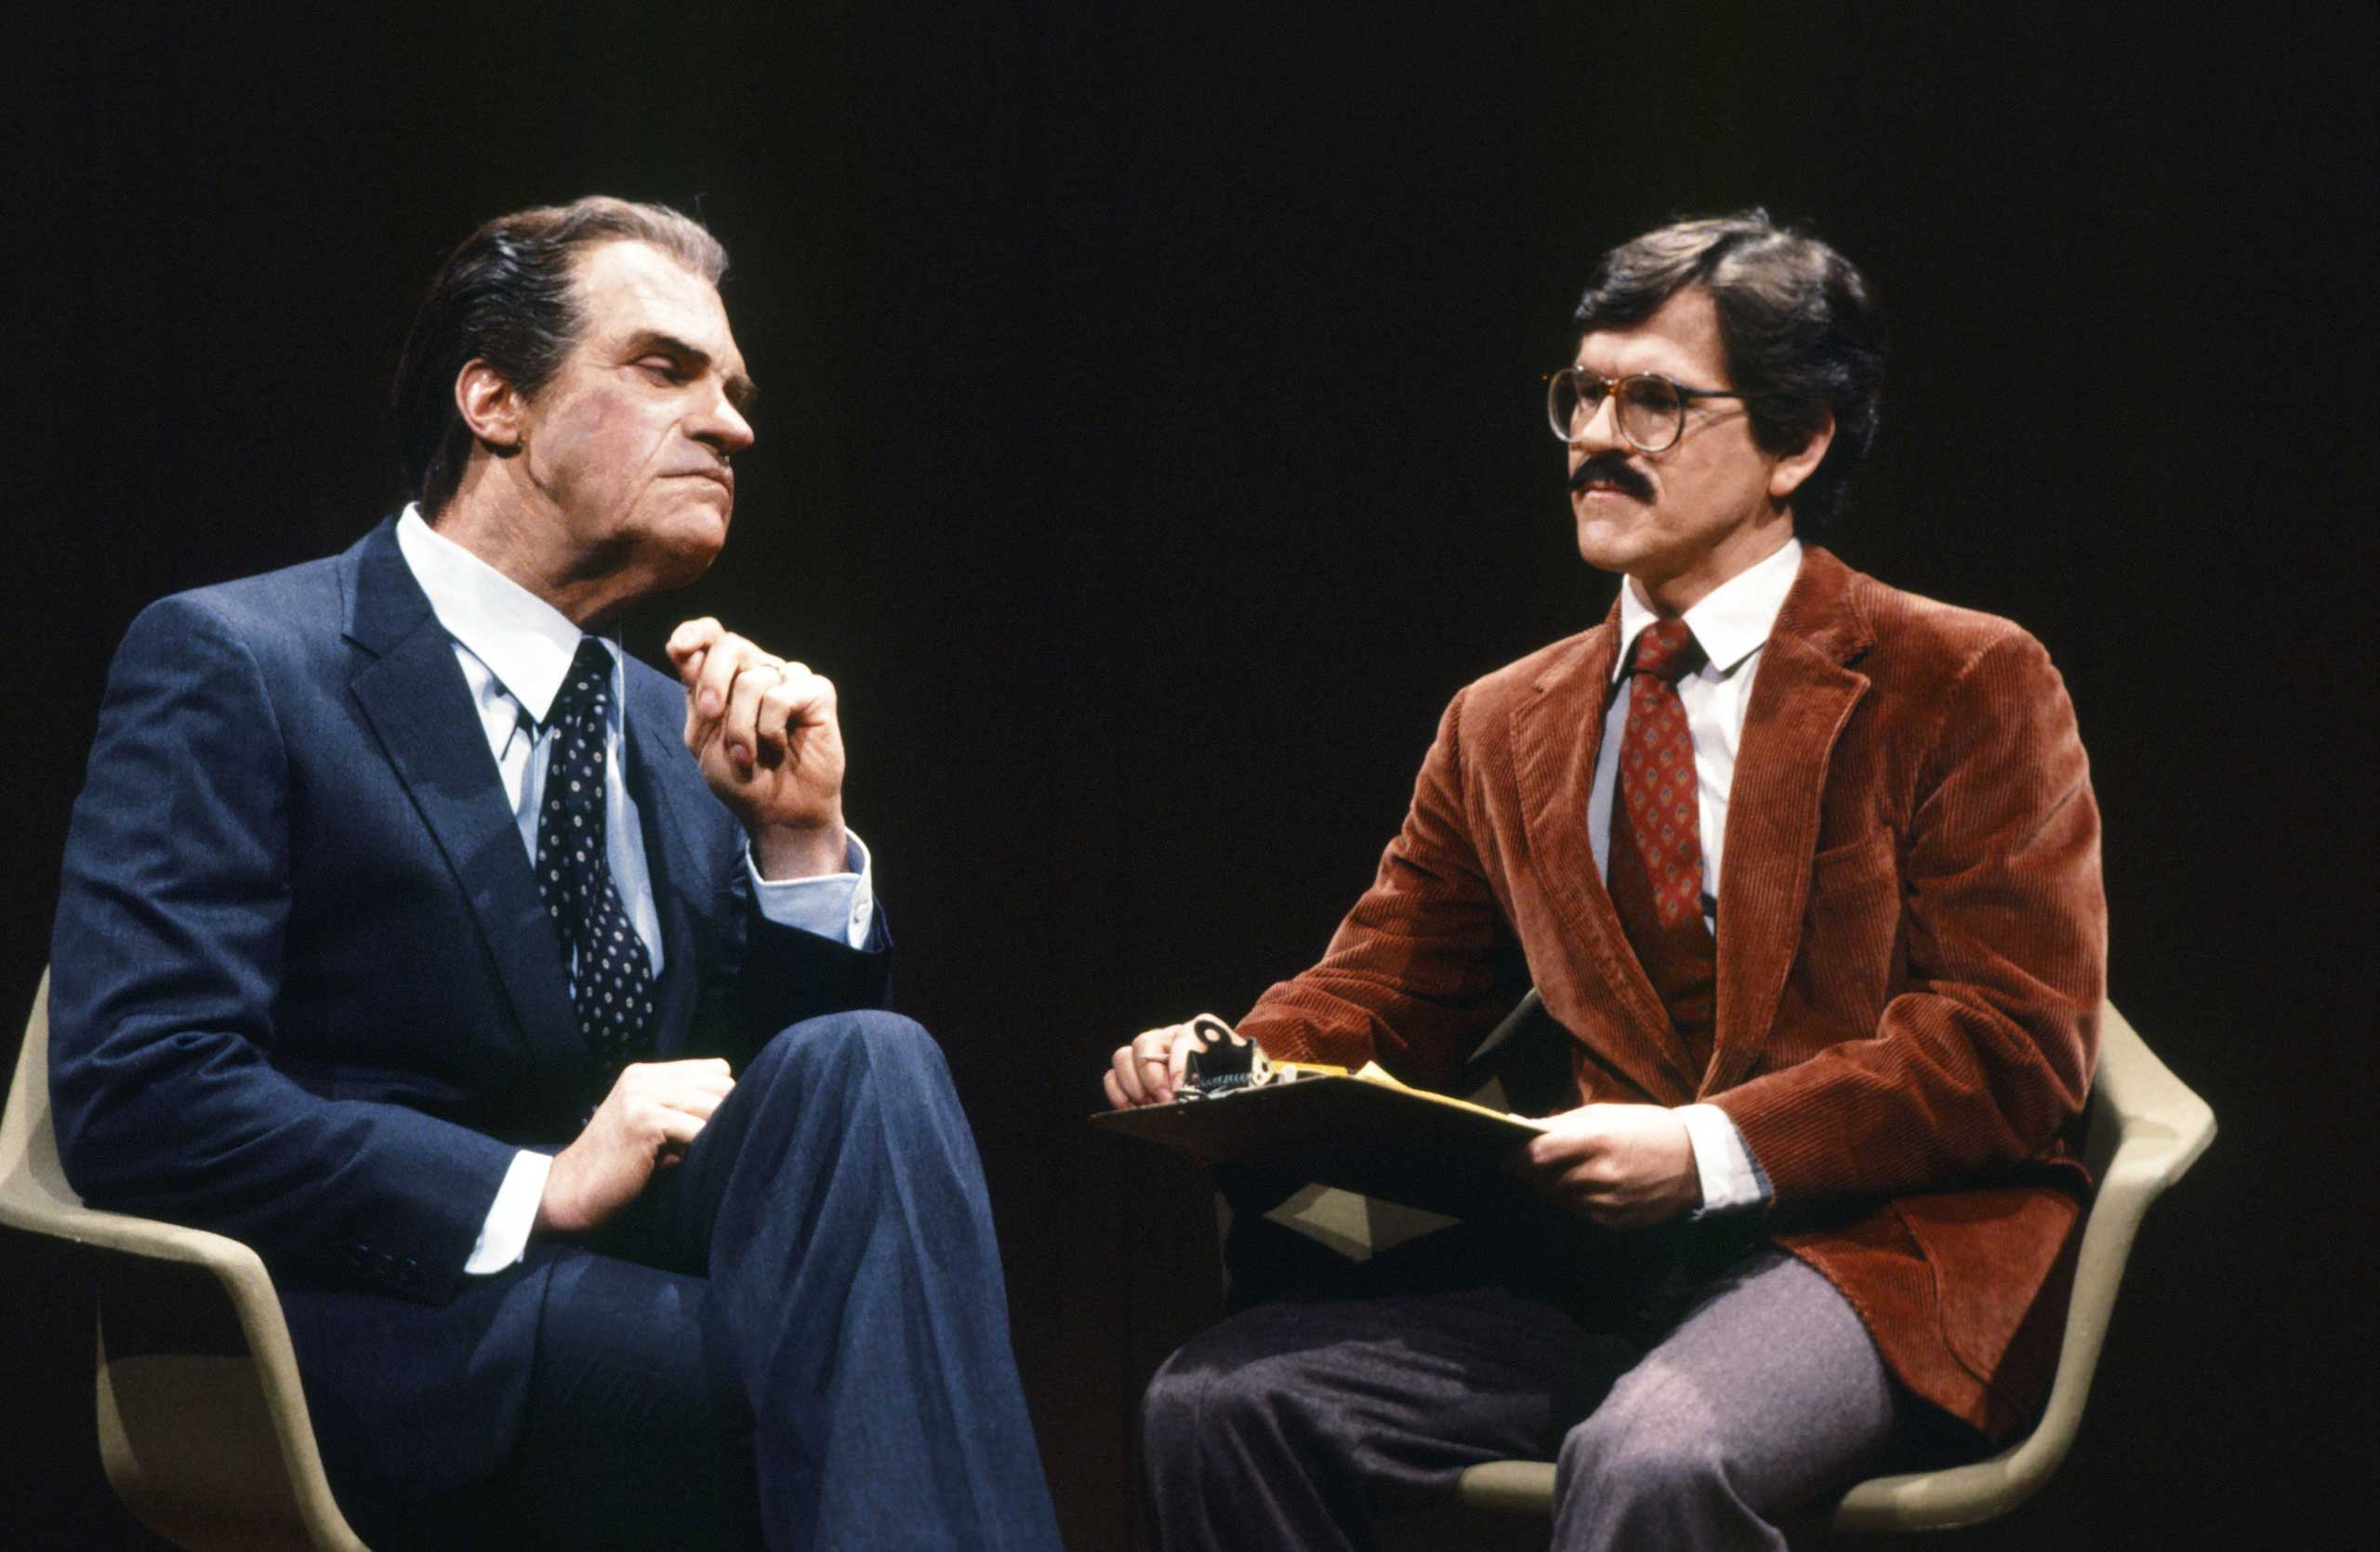 Joe Piscopo as President Richard Nixon and Tim Kazurinsky during the '60 Minutes' skit on April 14, 1984.